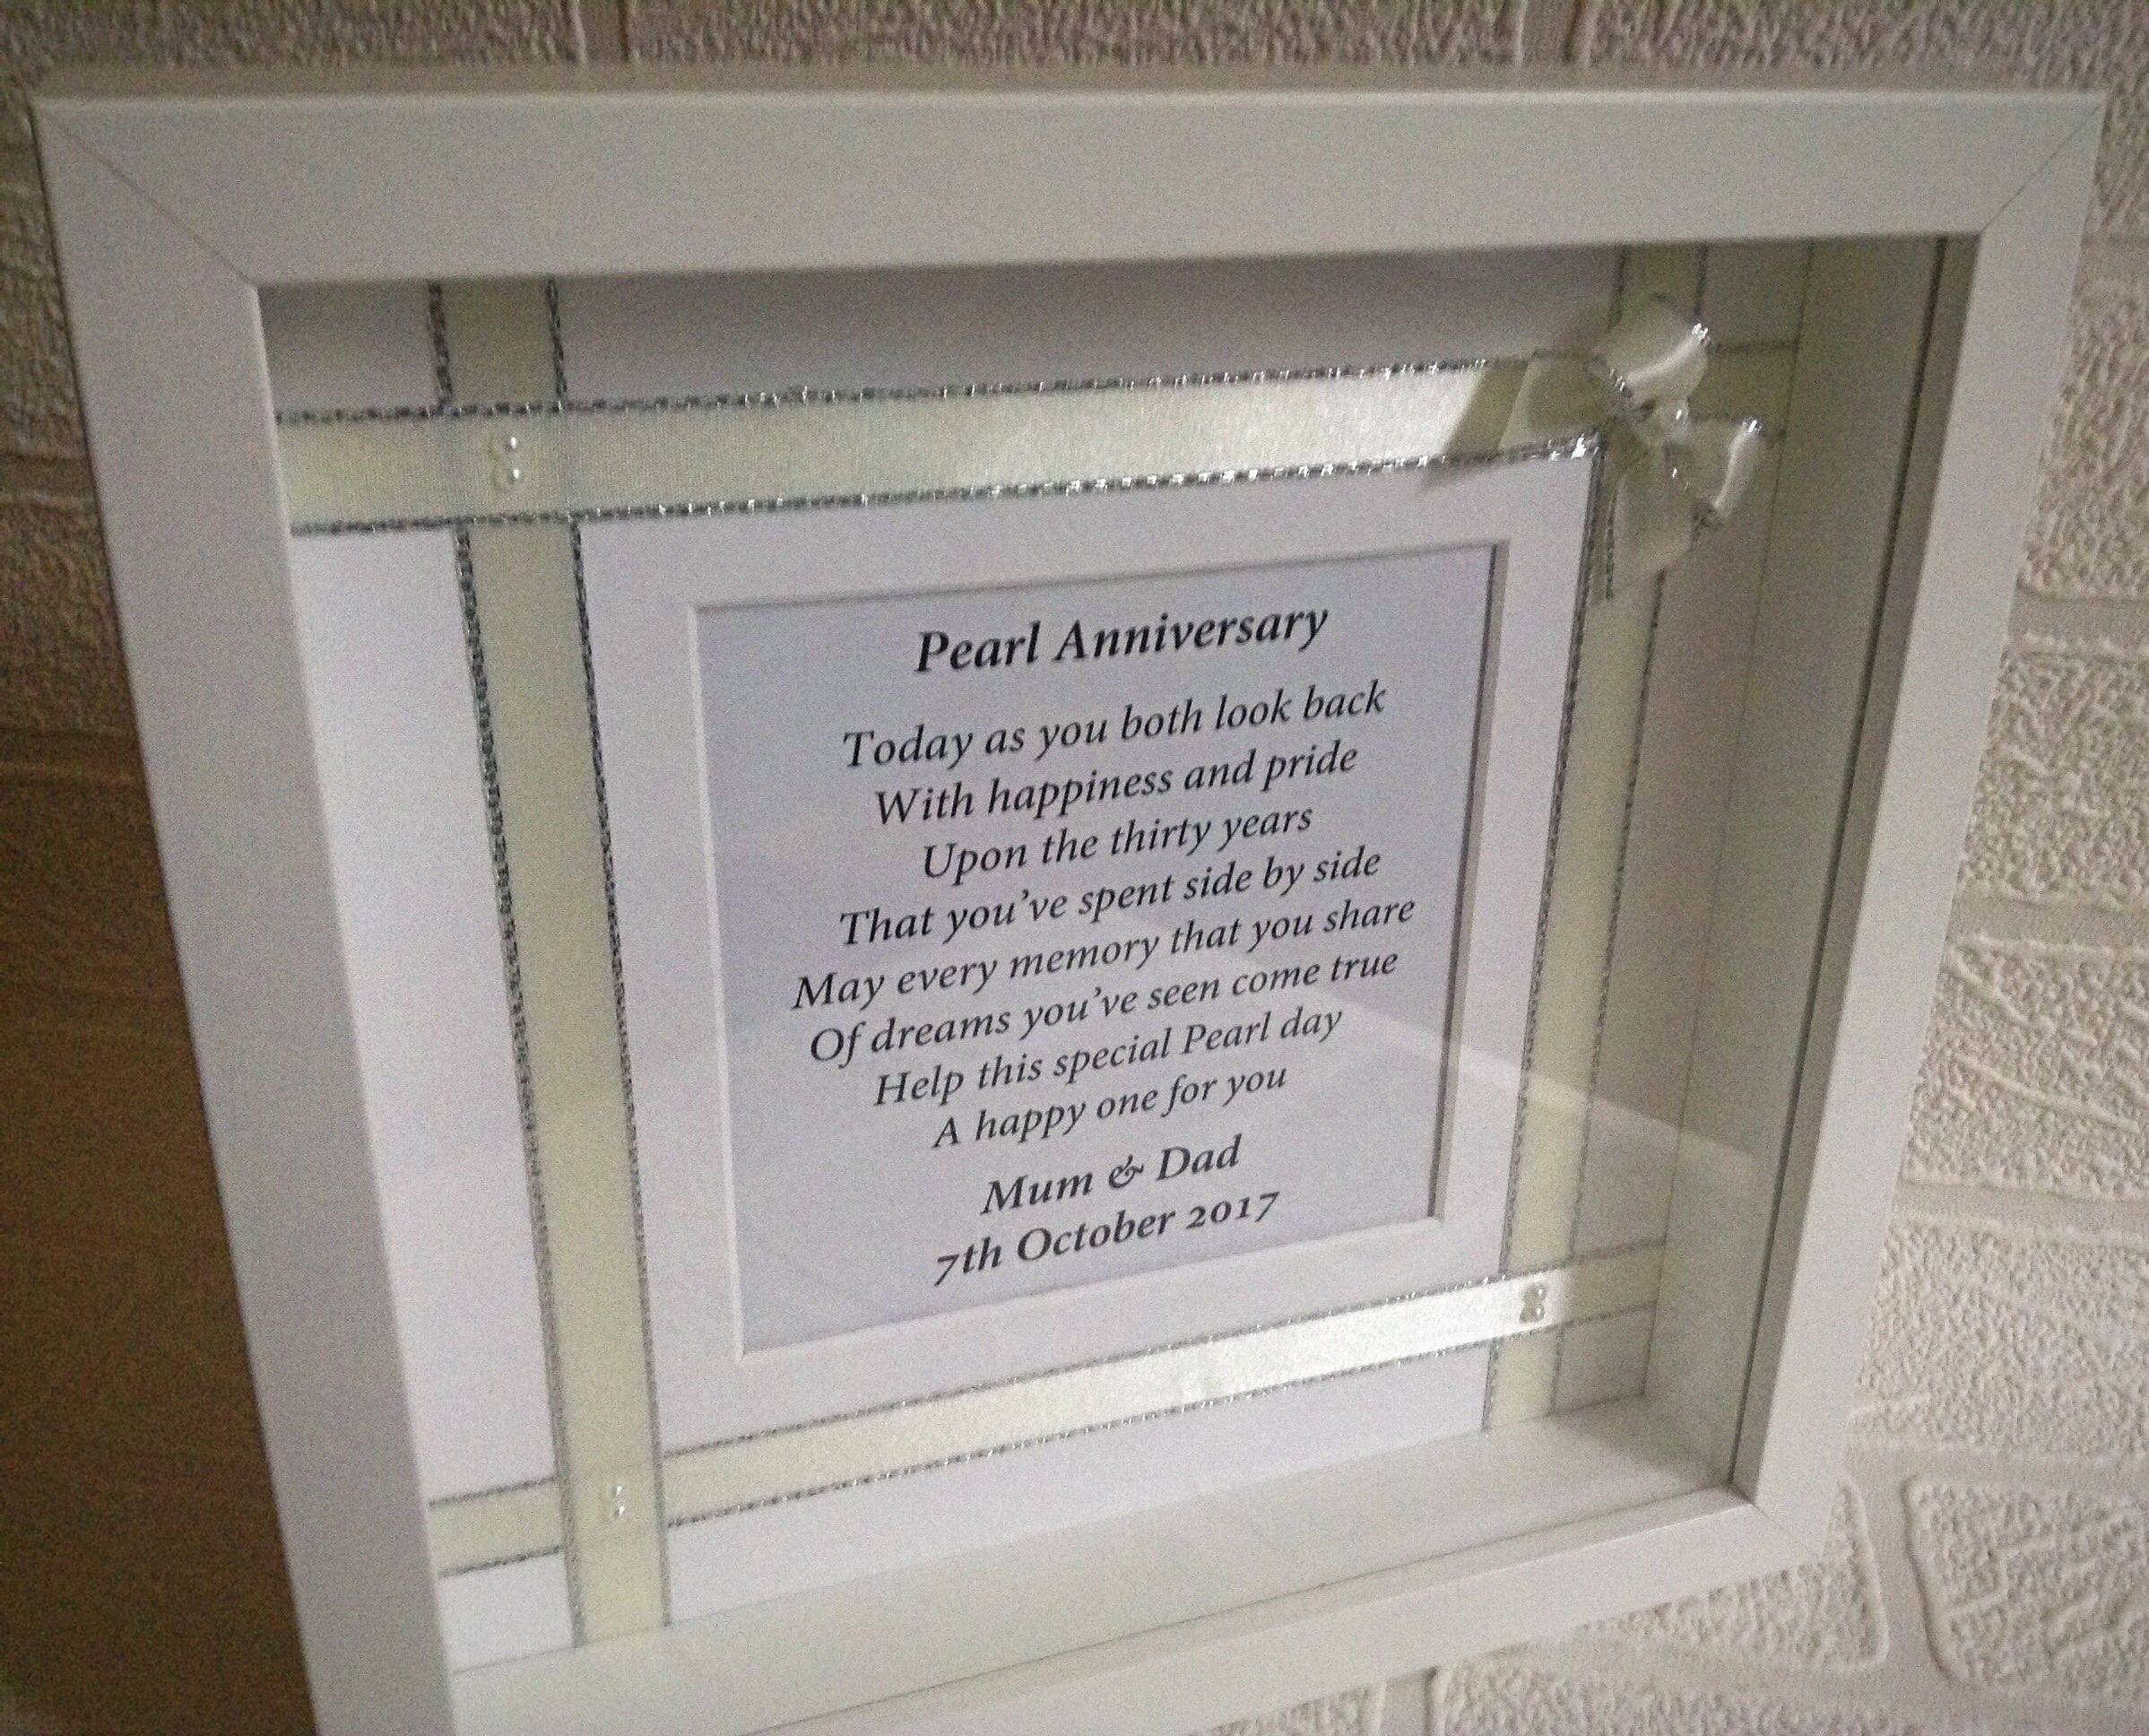 Pearl Anniversary Personalised Gift Frame Married 30 Years